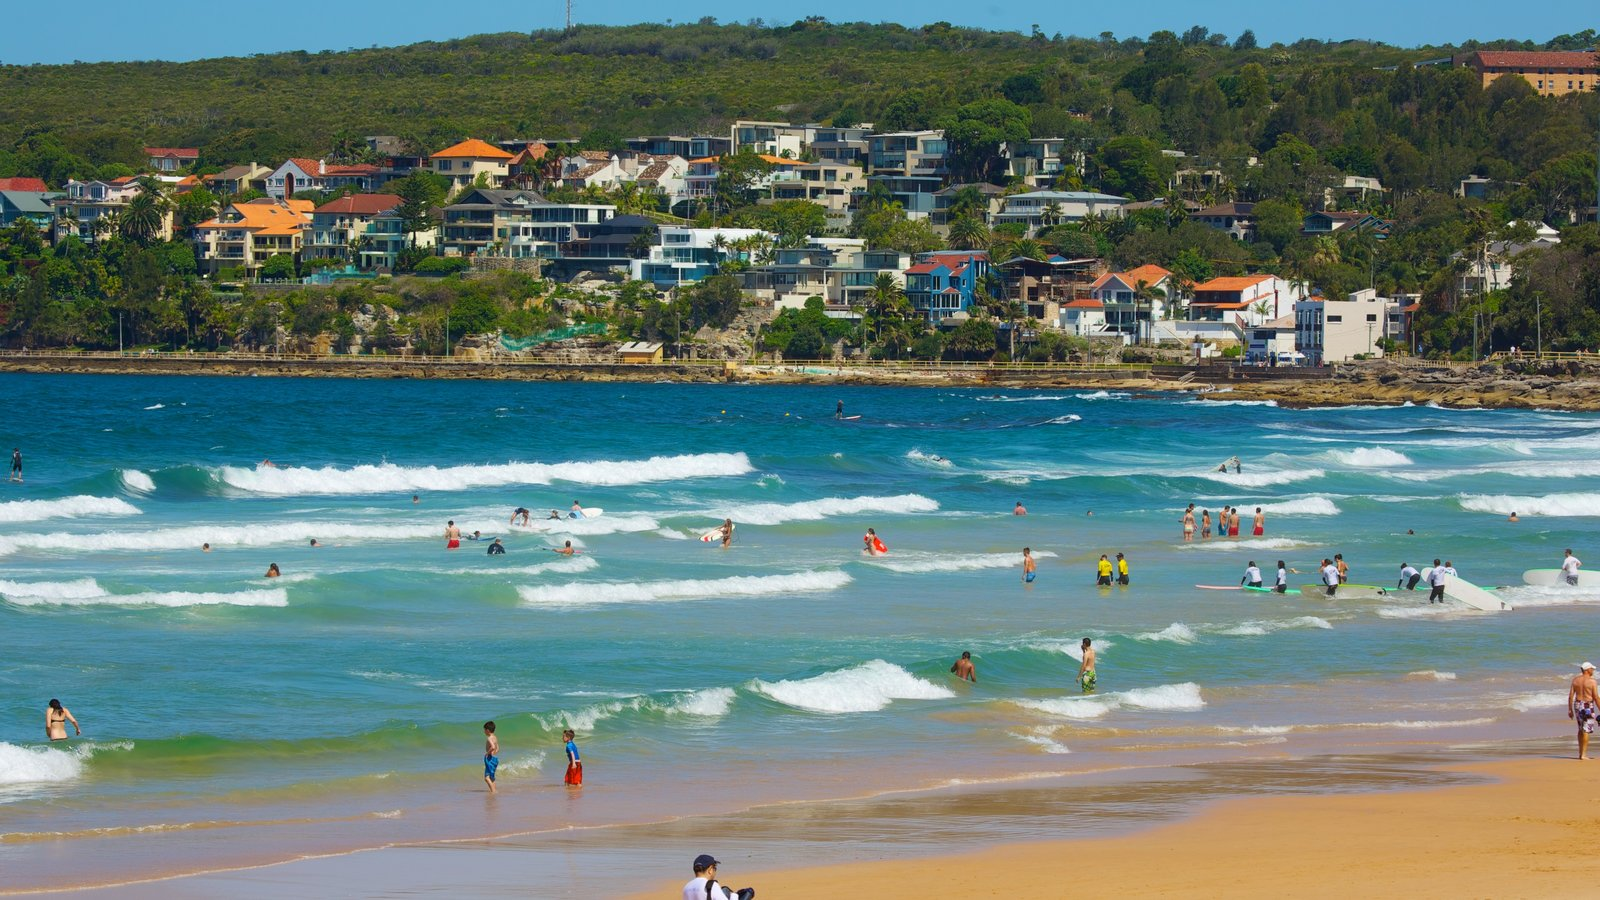 Sydney which includes a coastal town, swimming and surf